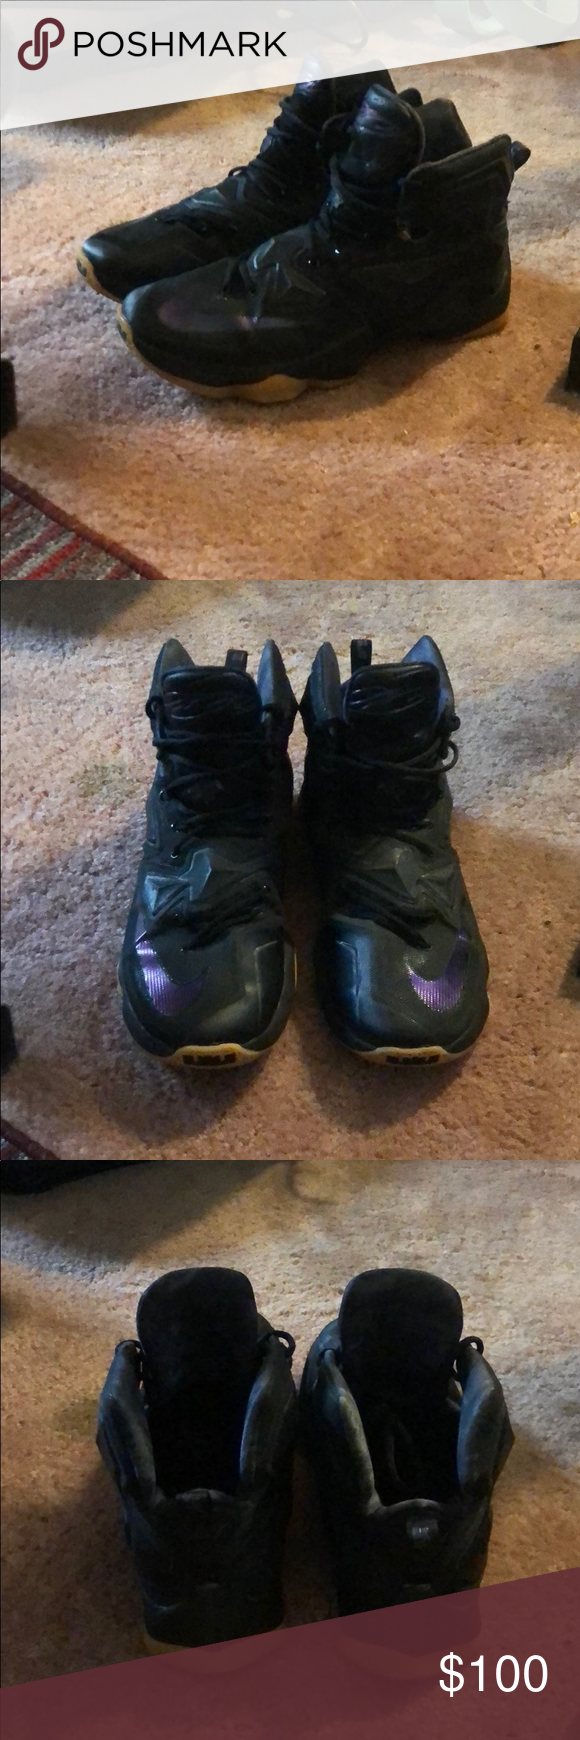 promo code 8bd34 e8f0c LeBron 13 Black with gum bottom Mint condition LeBron 13 Black with gum  bottom sneakers only